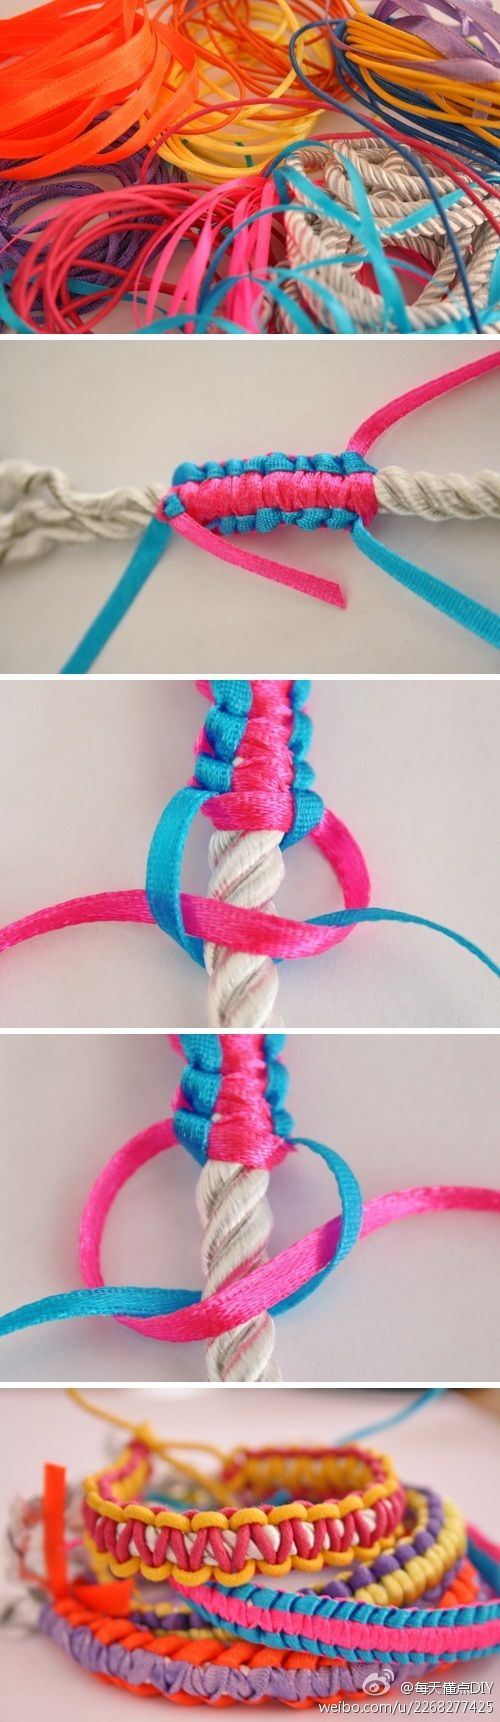 bracelet - something do do with my nieces n nephews on a rainy day! (maybe more for the nieces).